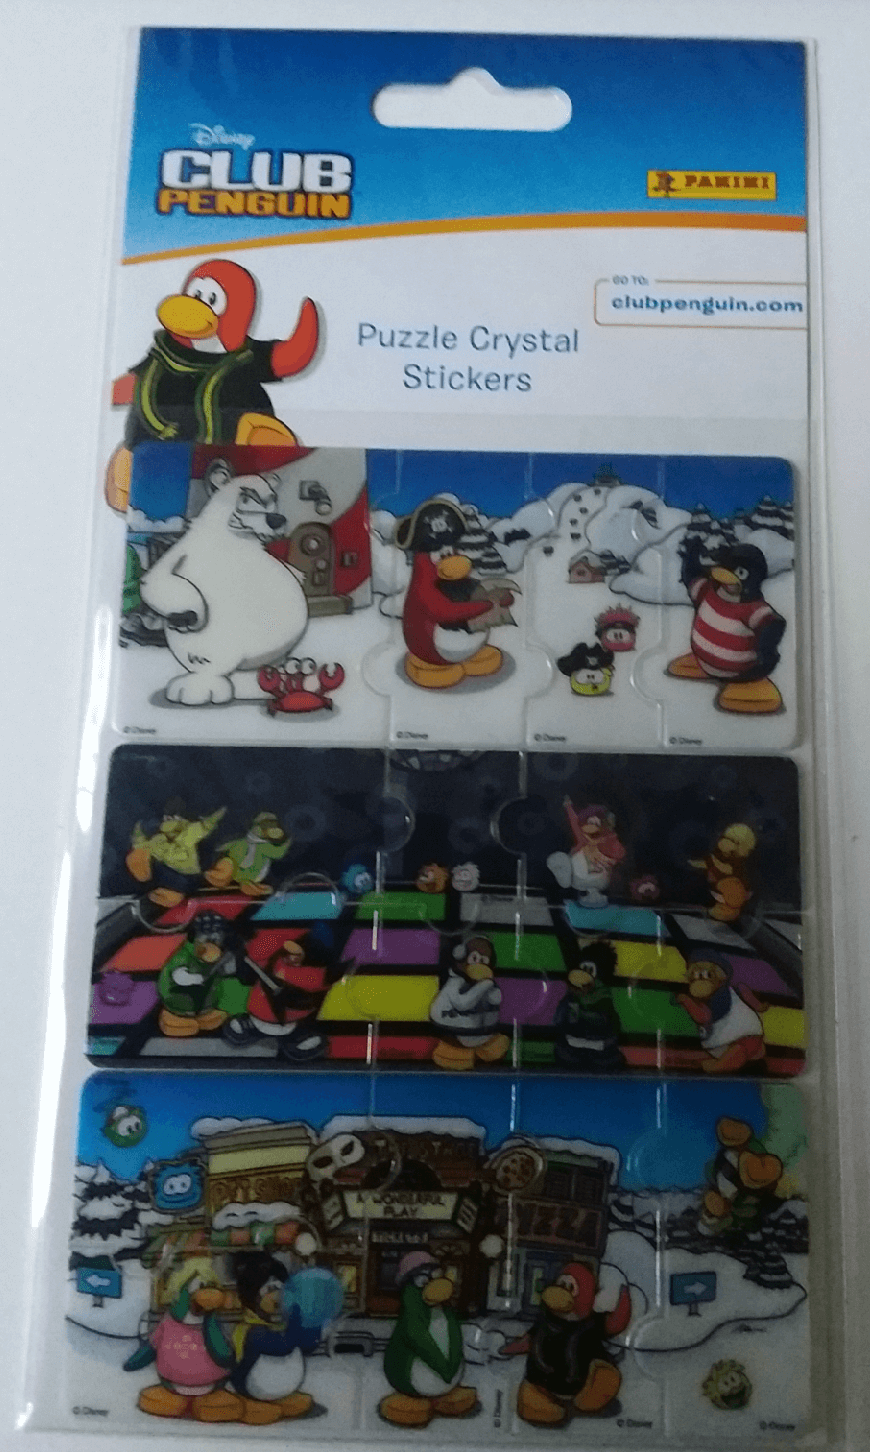 Puzzle Crystal Stickers